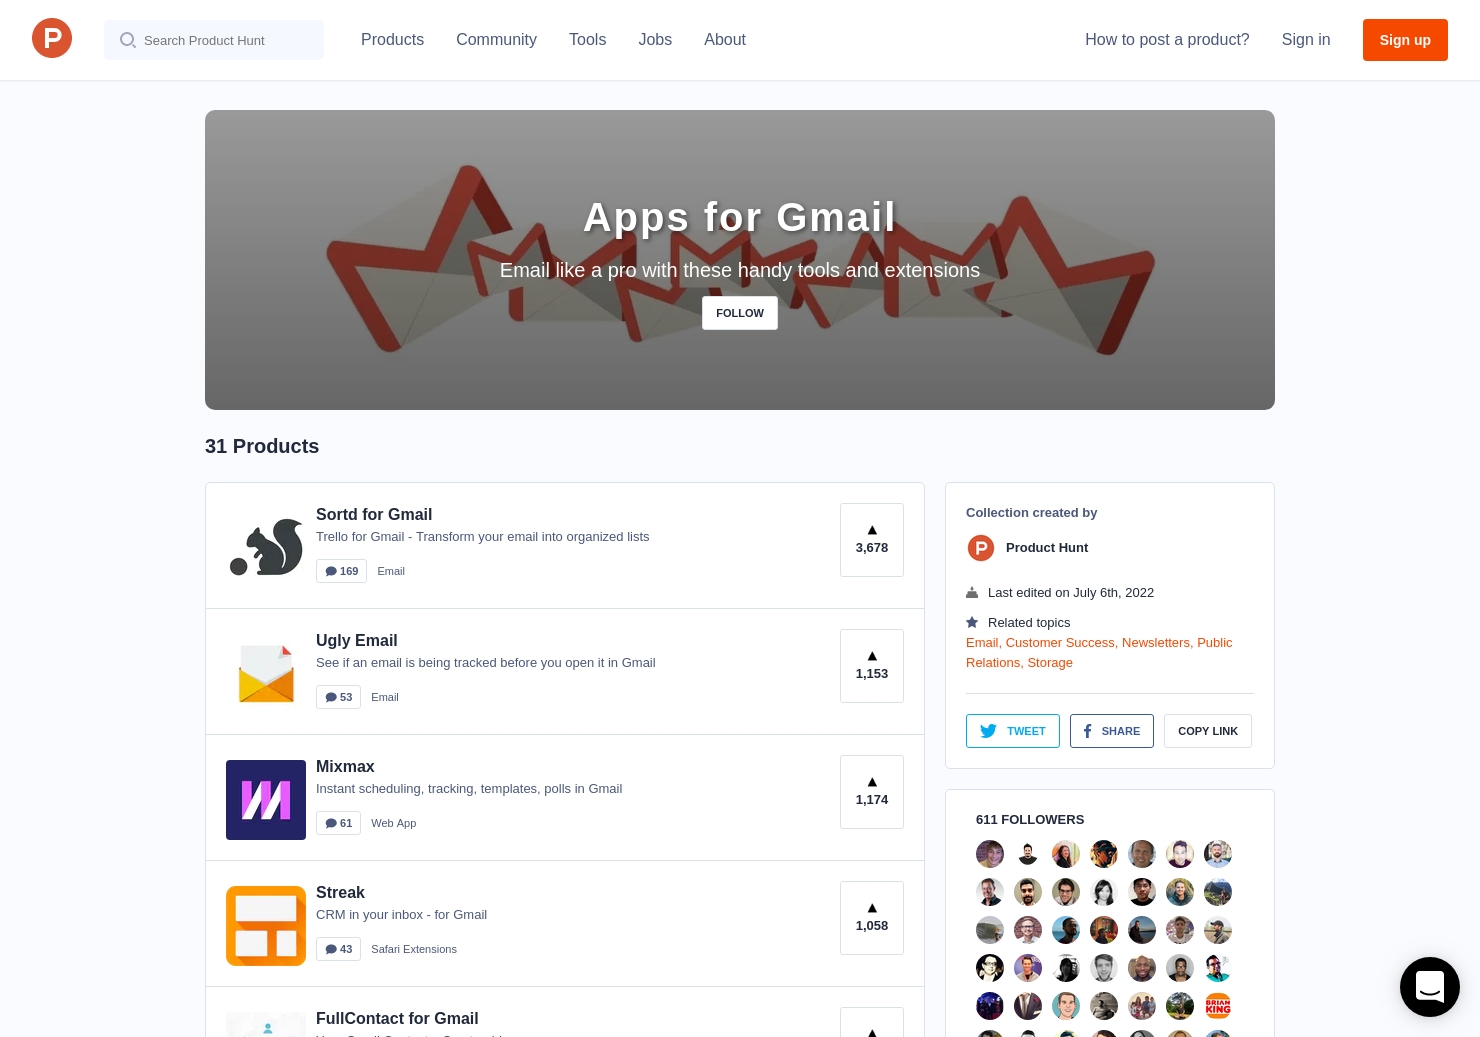 Apps for Gmail | Product Hunt